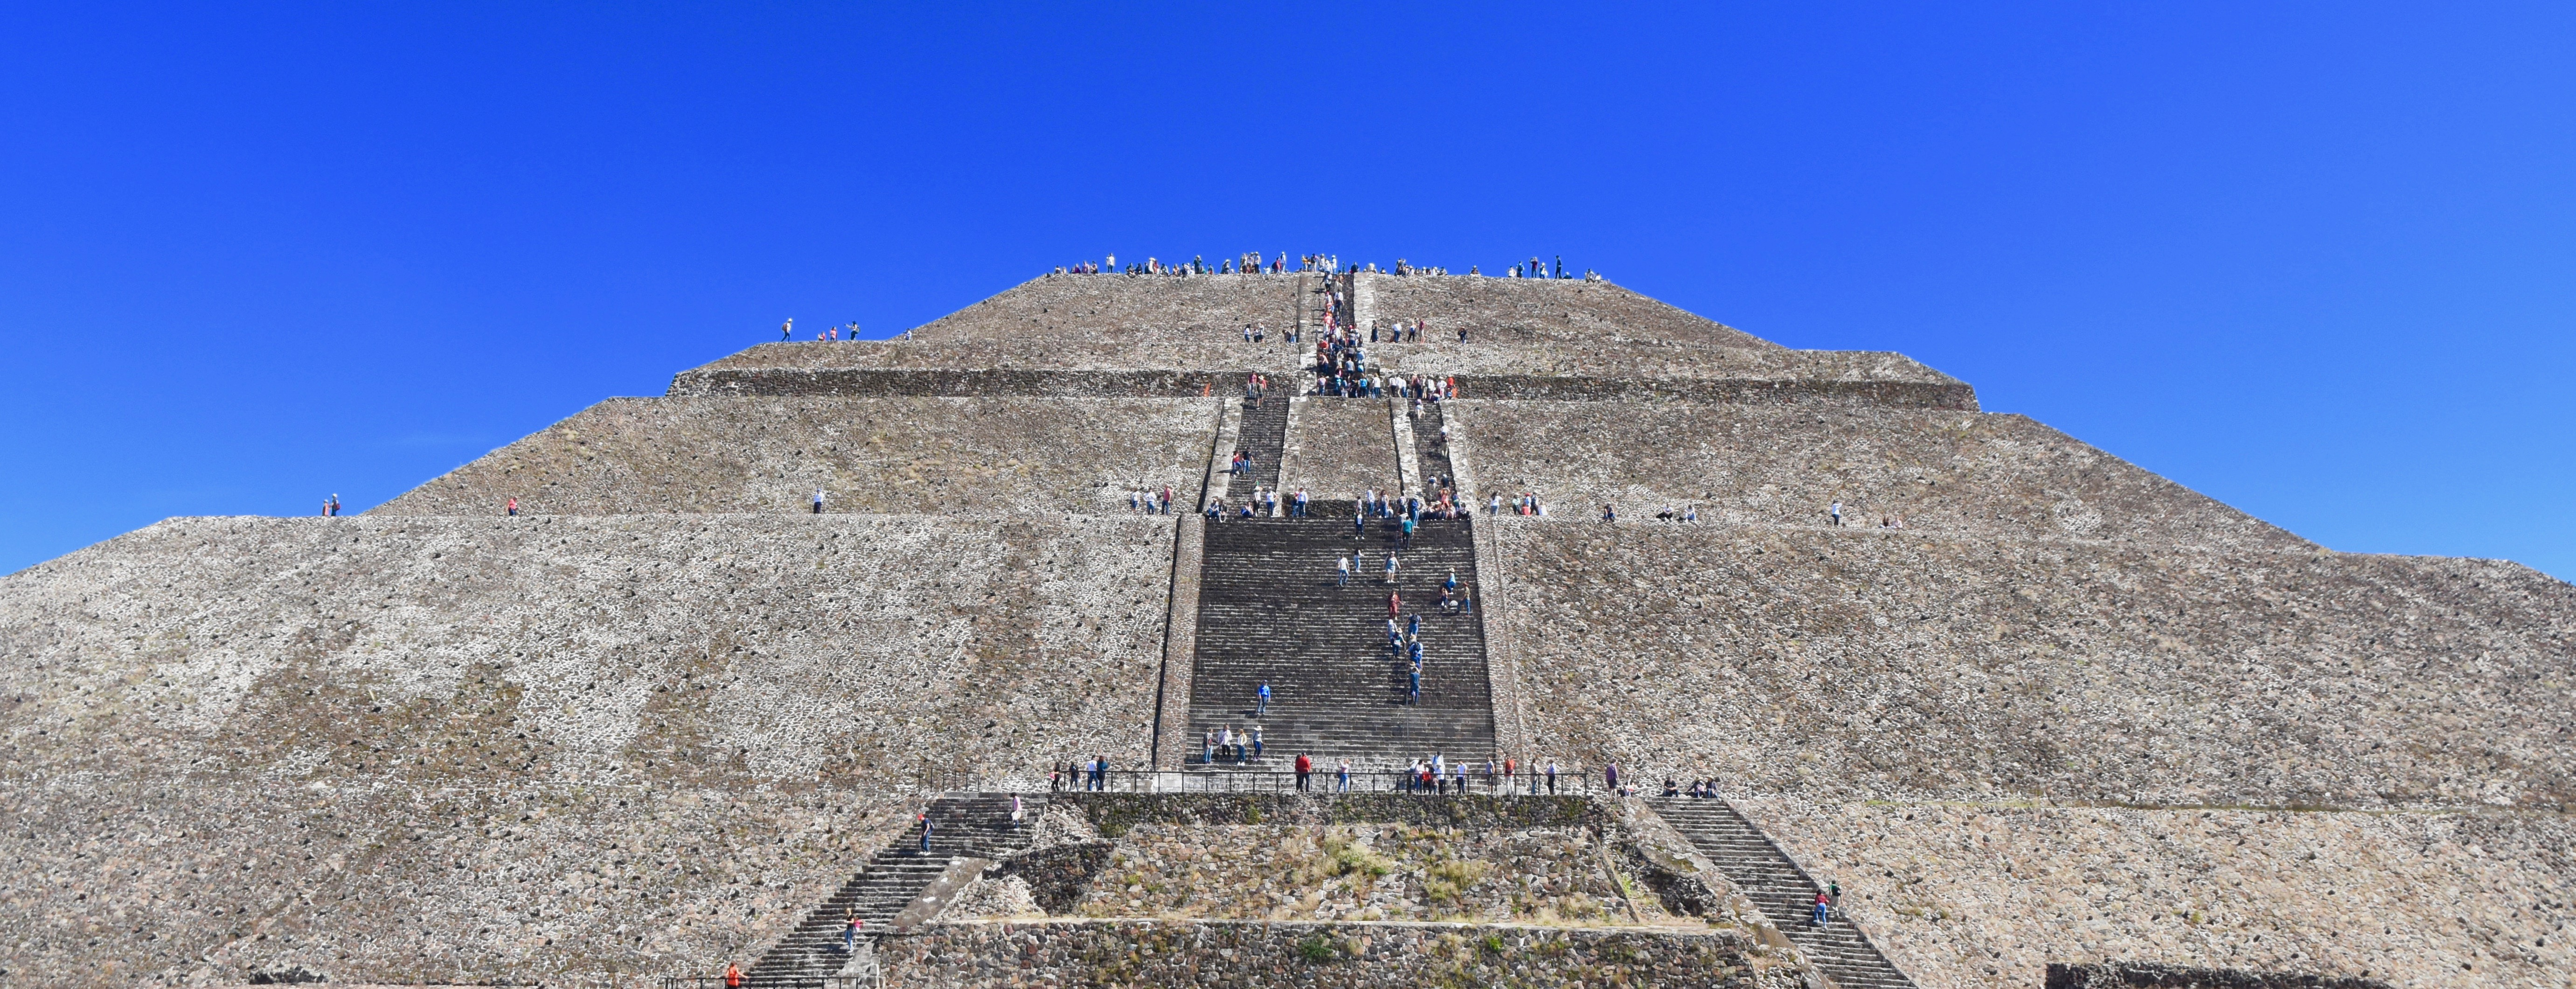 Stairs up the Pyramid of the Sun